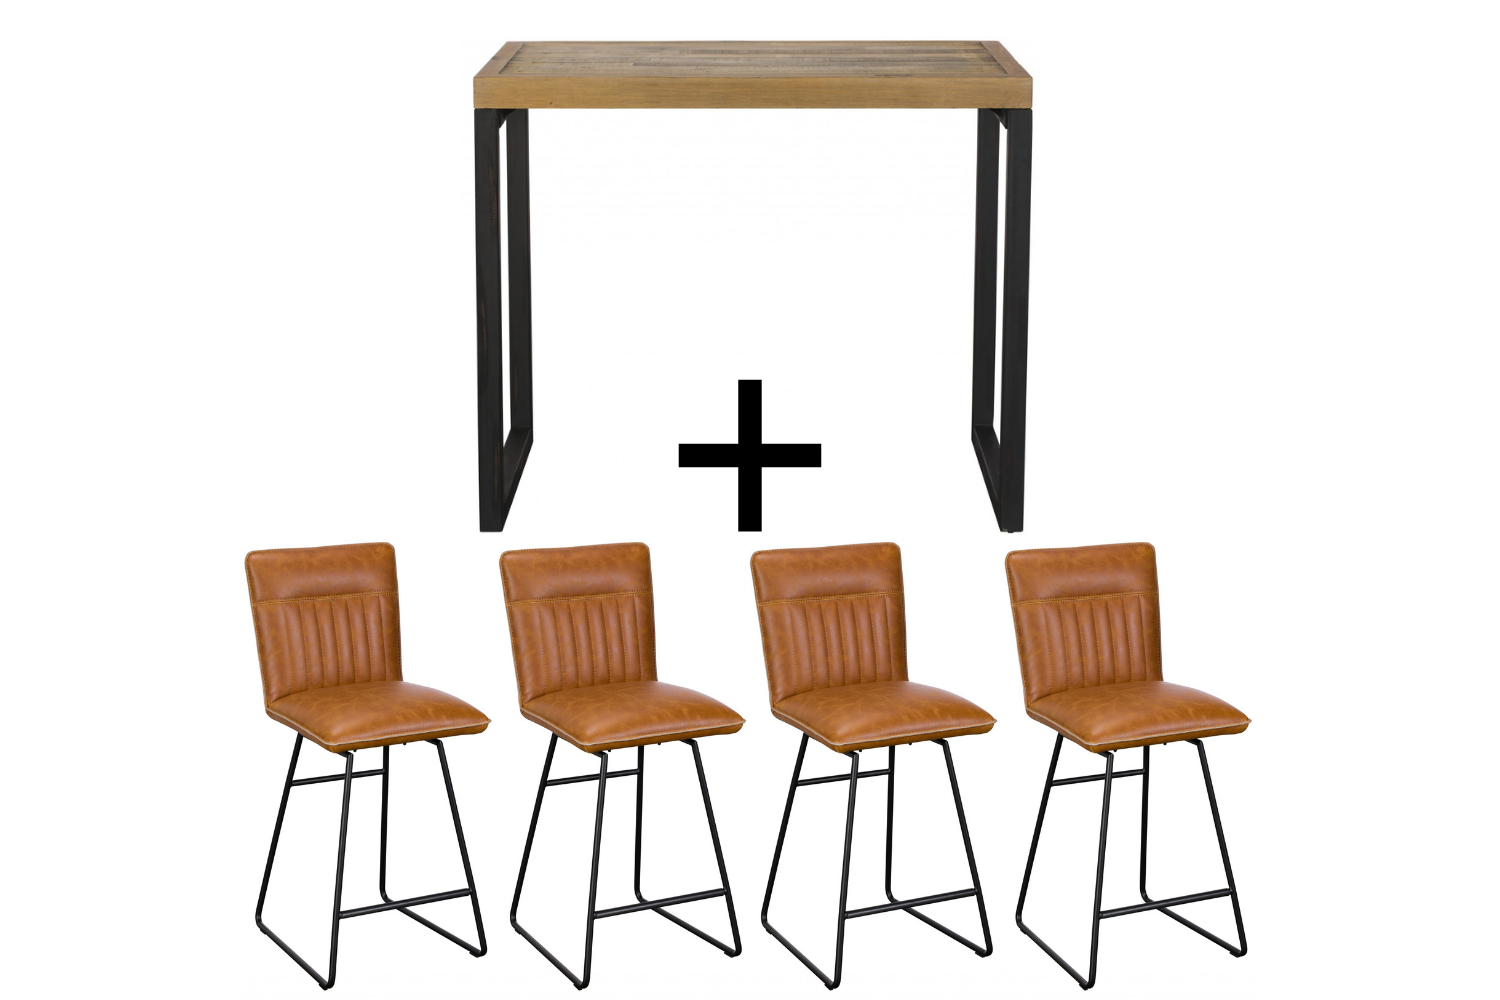 Ford Bar Table & 4 Tan Cooper Bar stools - Bundle Deal